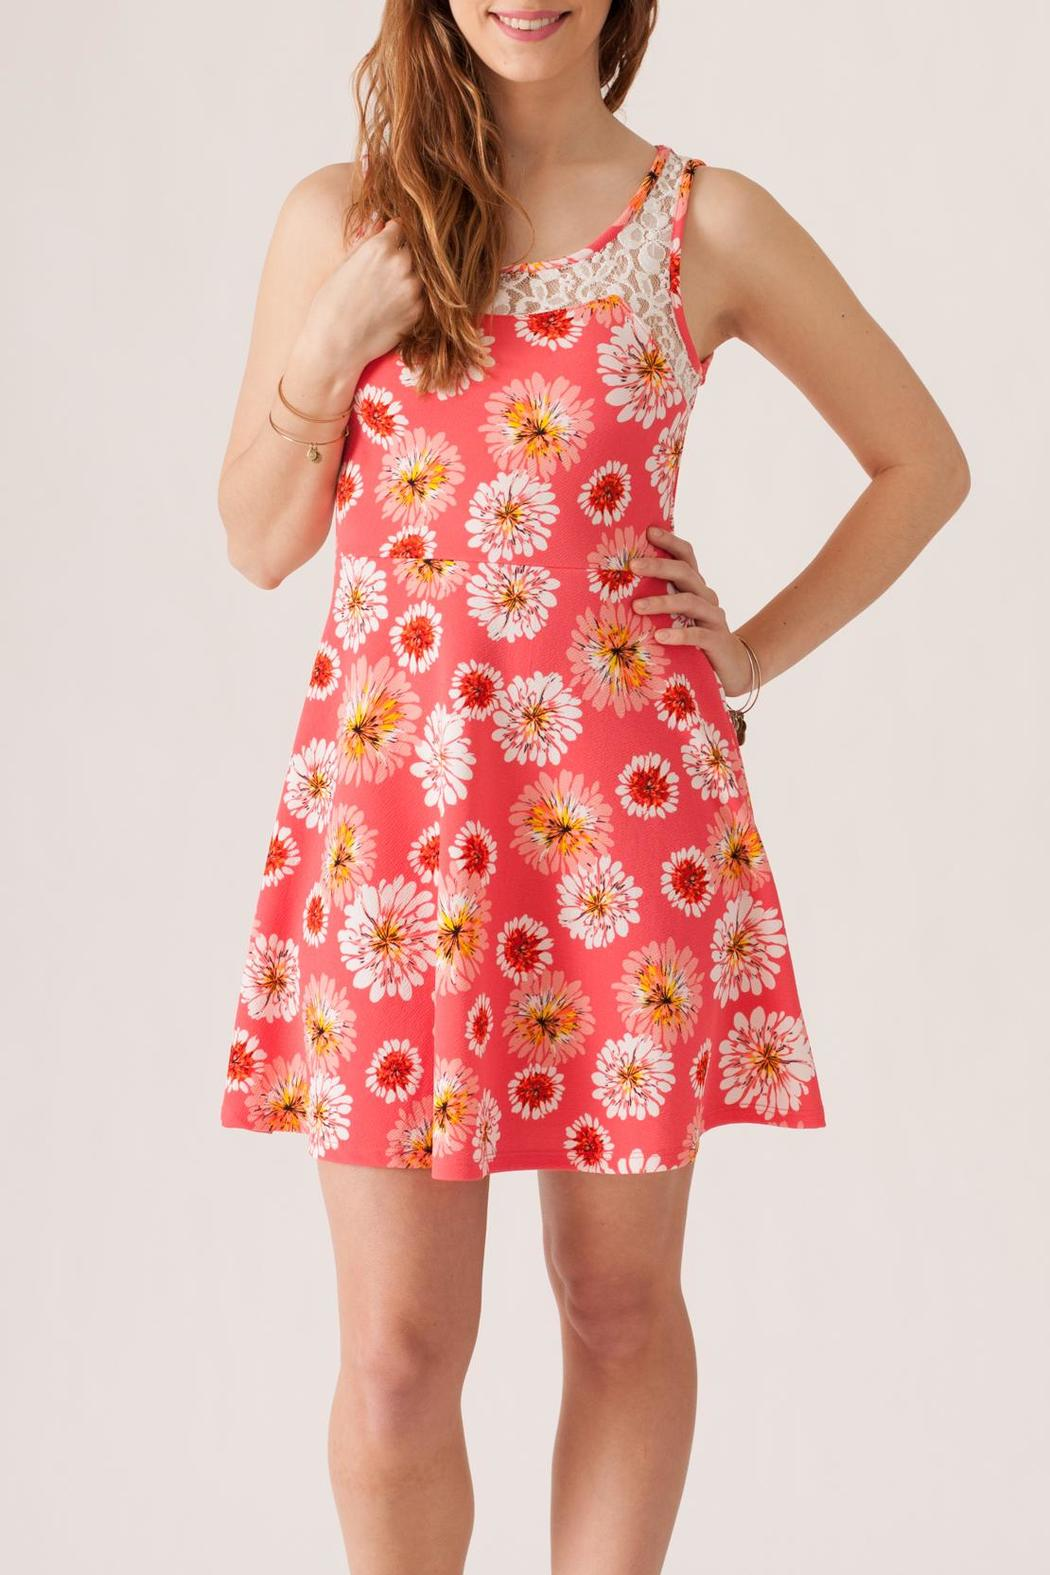 Stylebook Floral Print Dress - Main Image